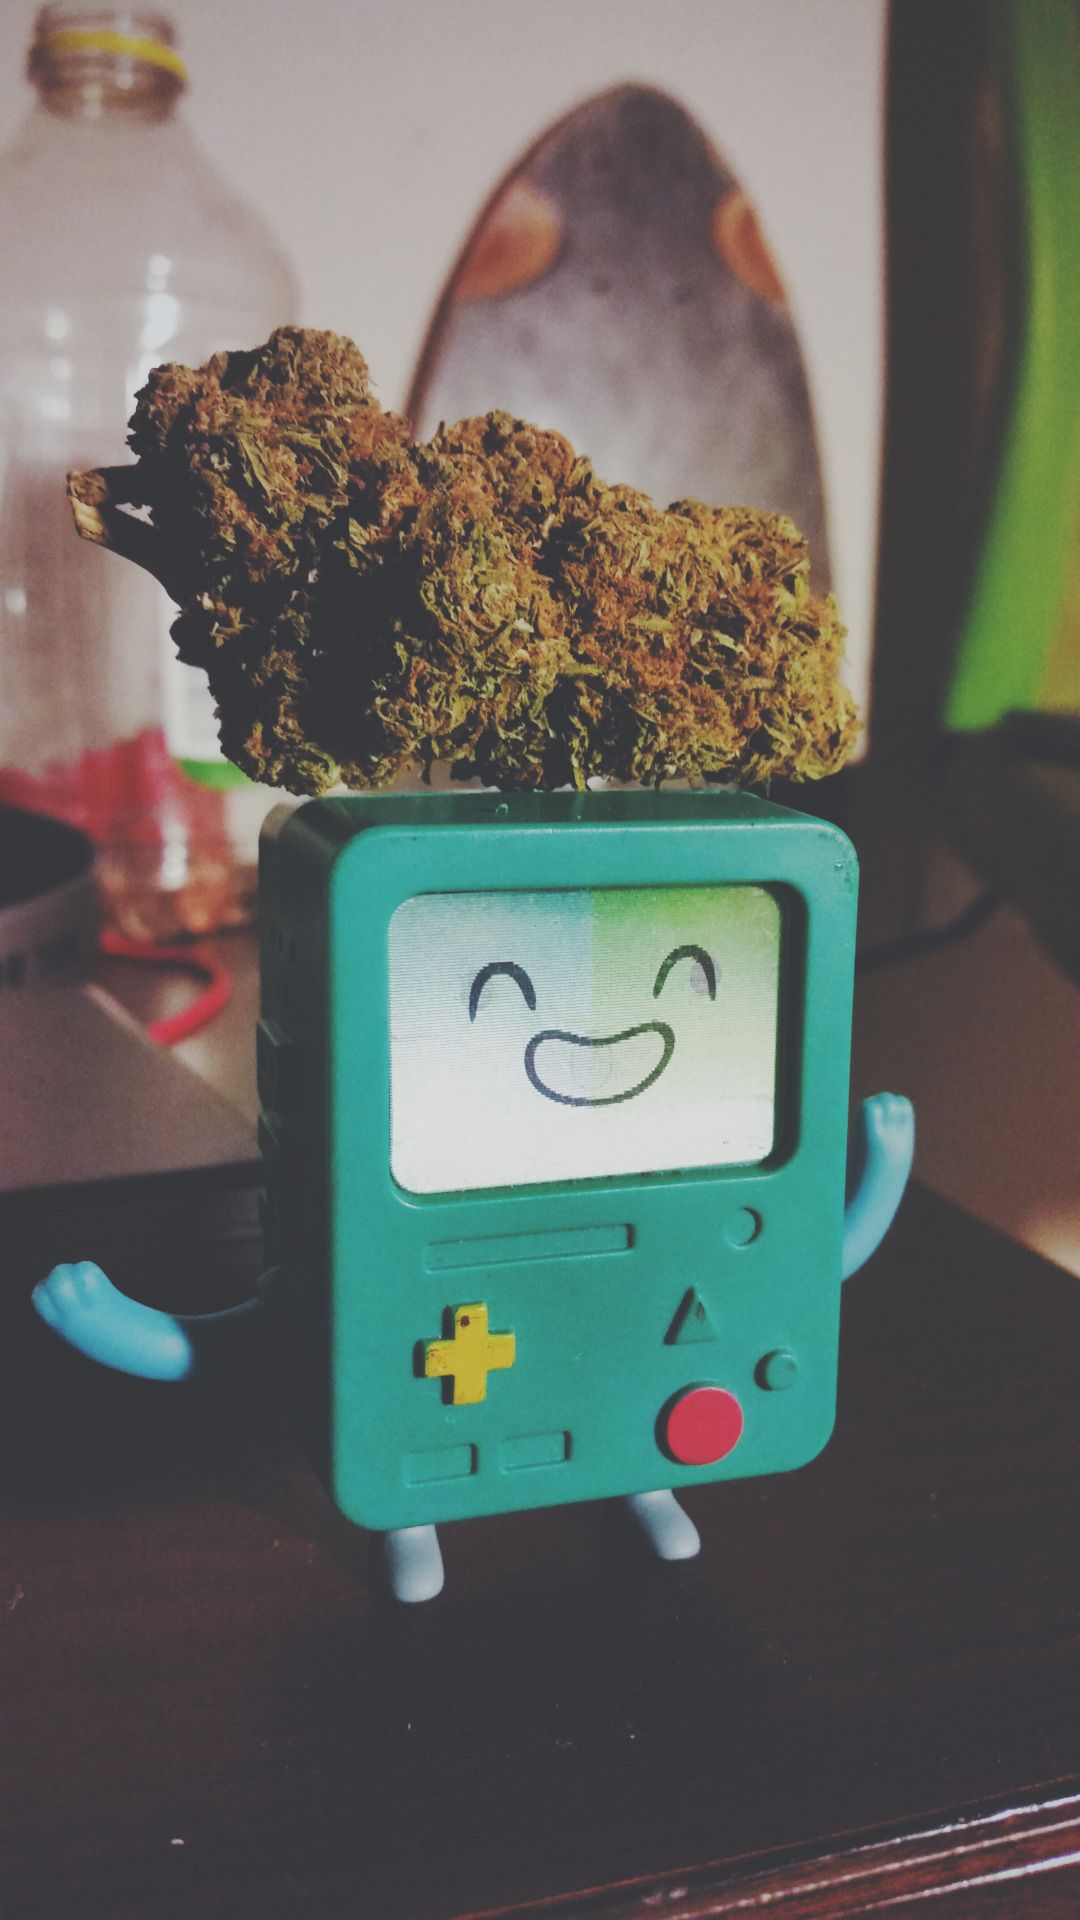 Alone With Weed